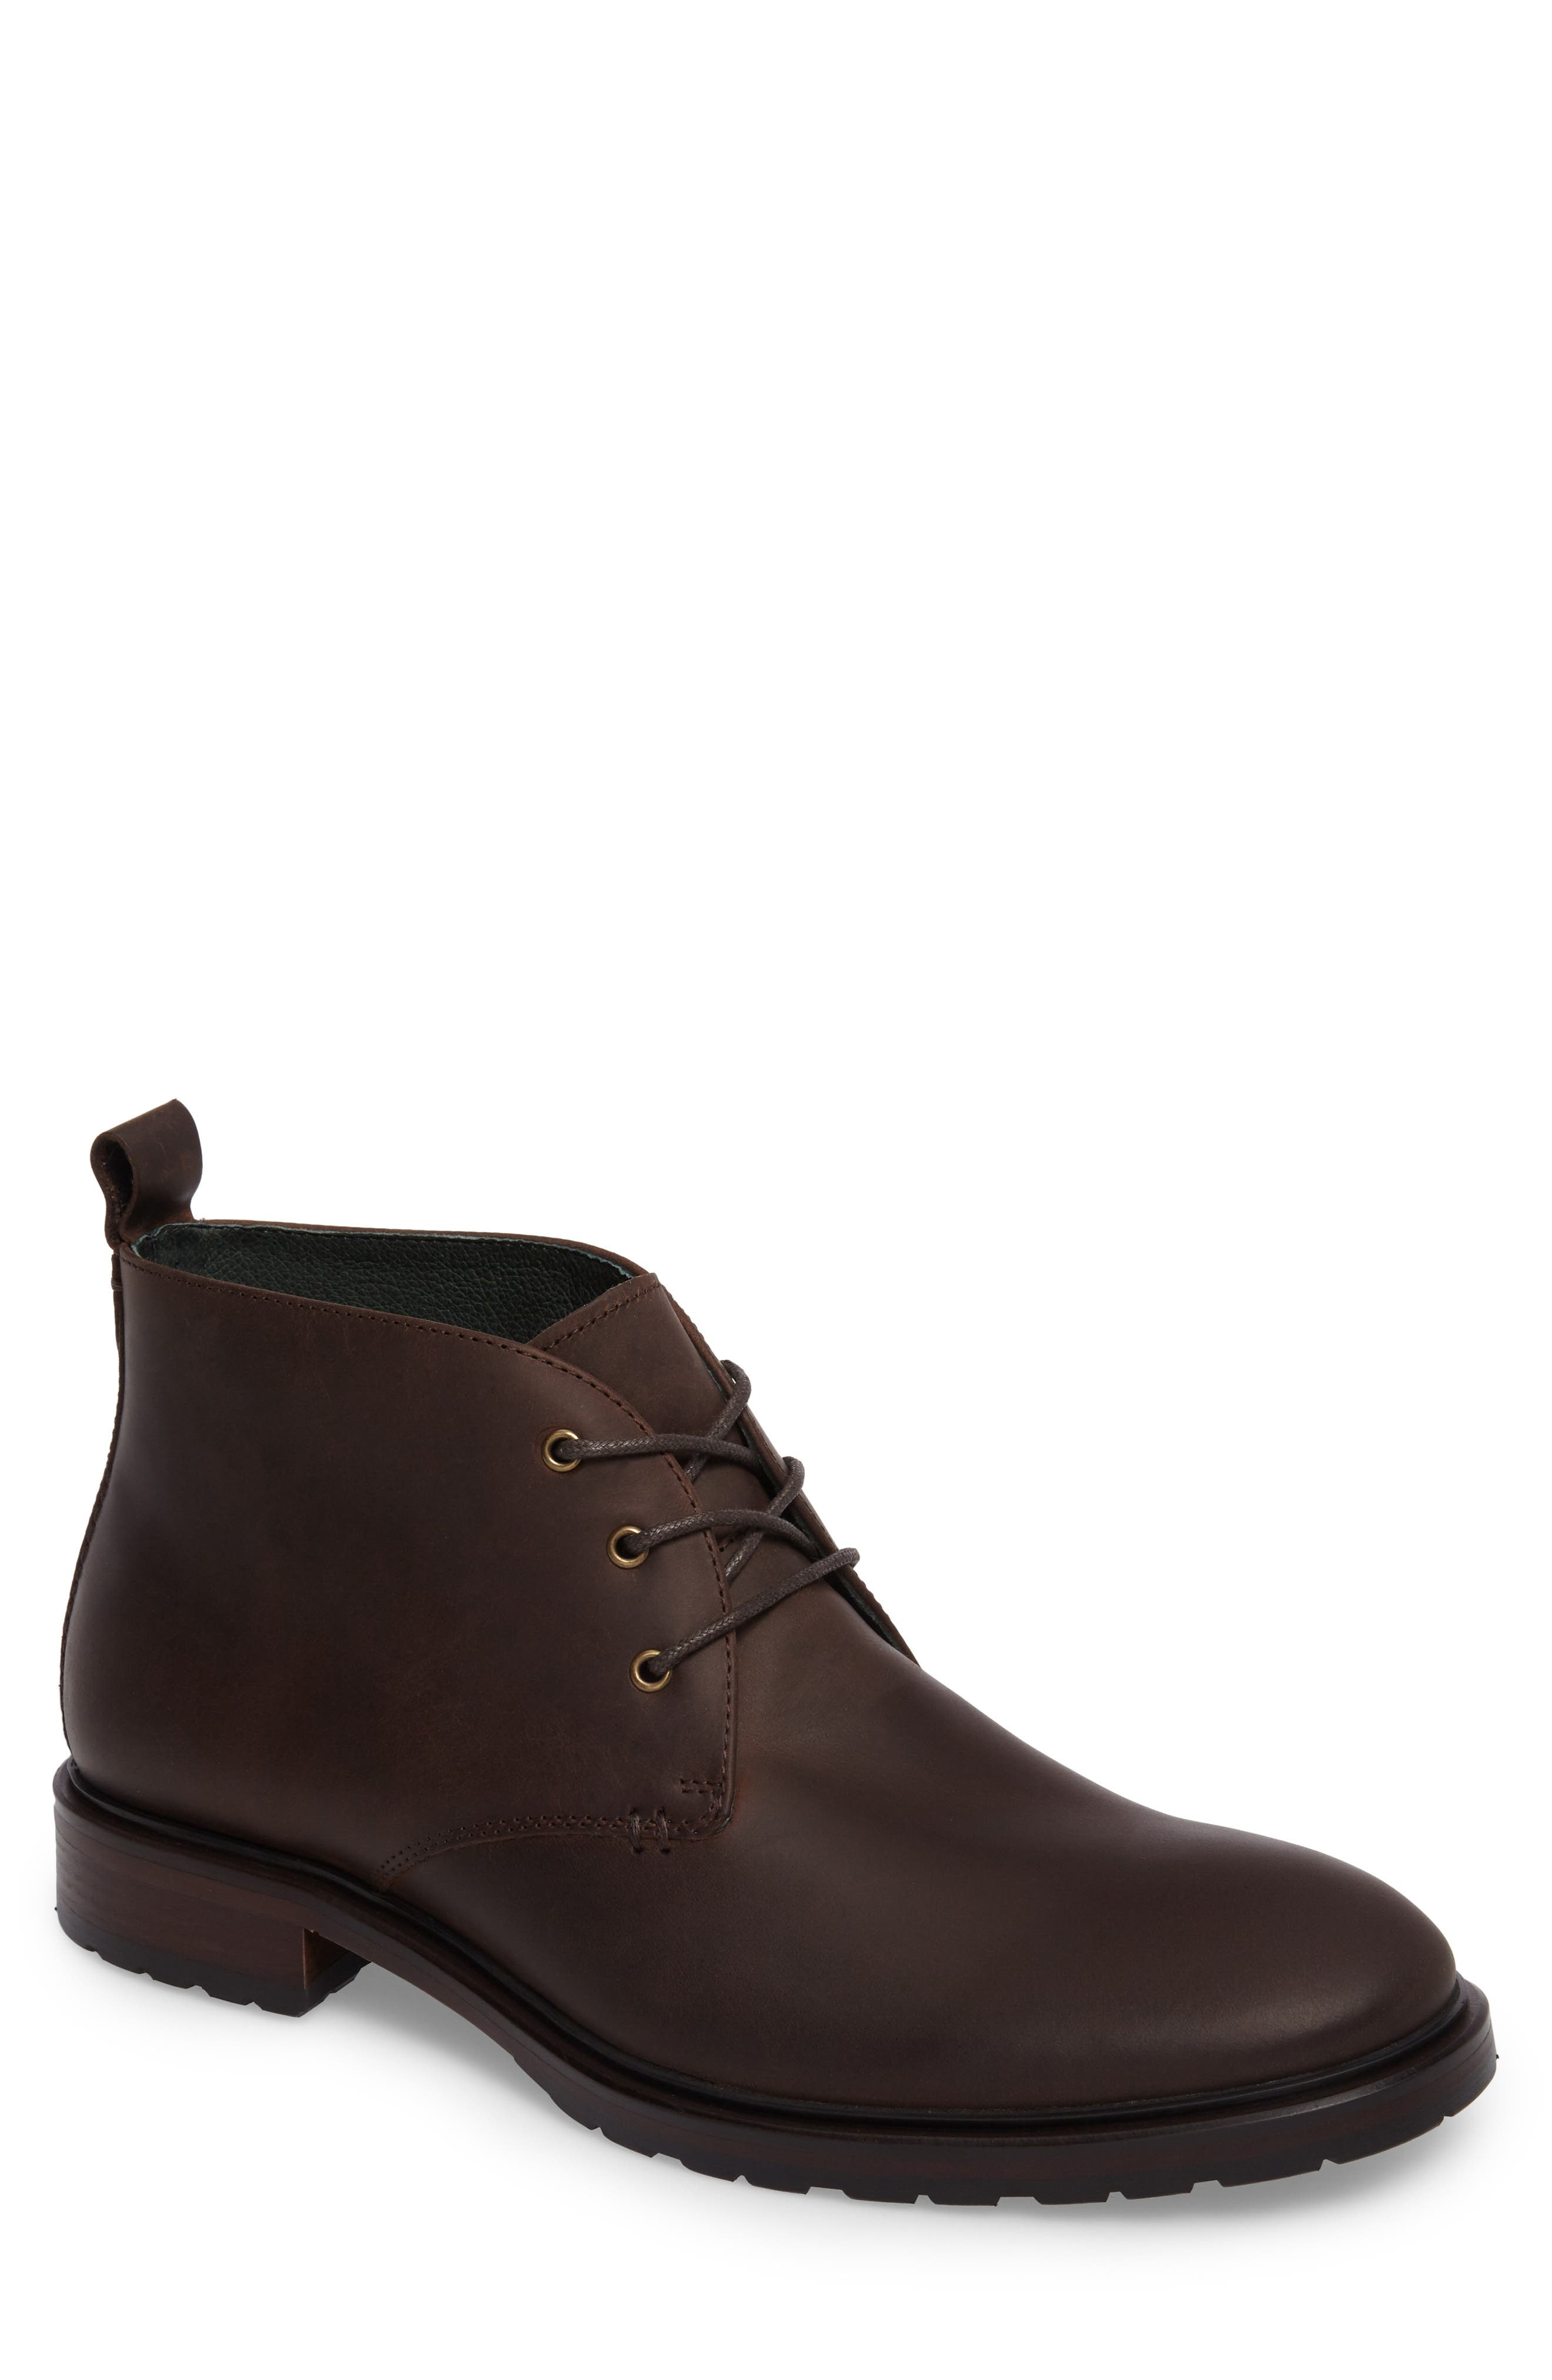 Myles Chukka Boot,                             Main thumbnail 1, color,                             Dark Brown Leather